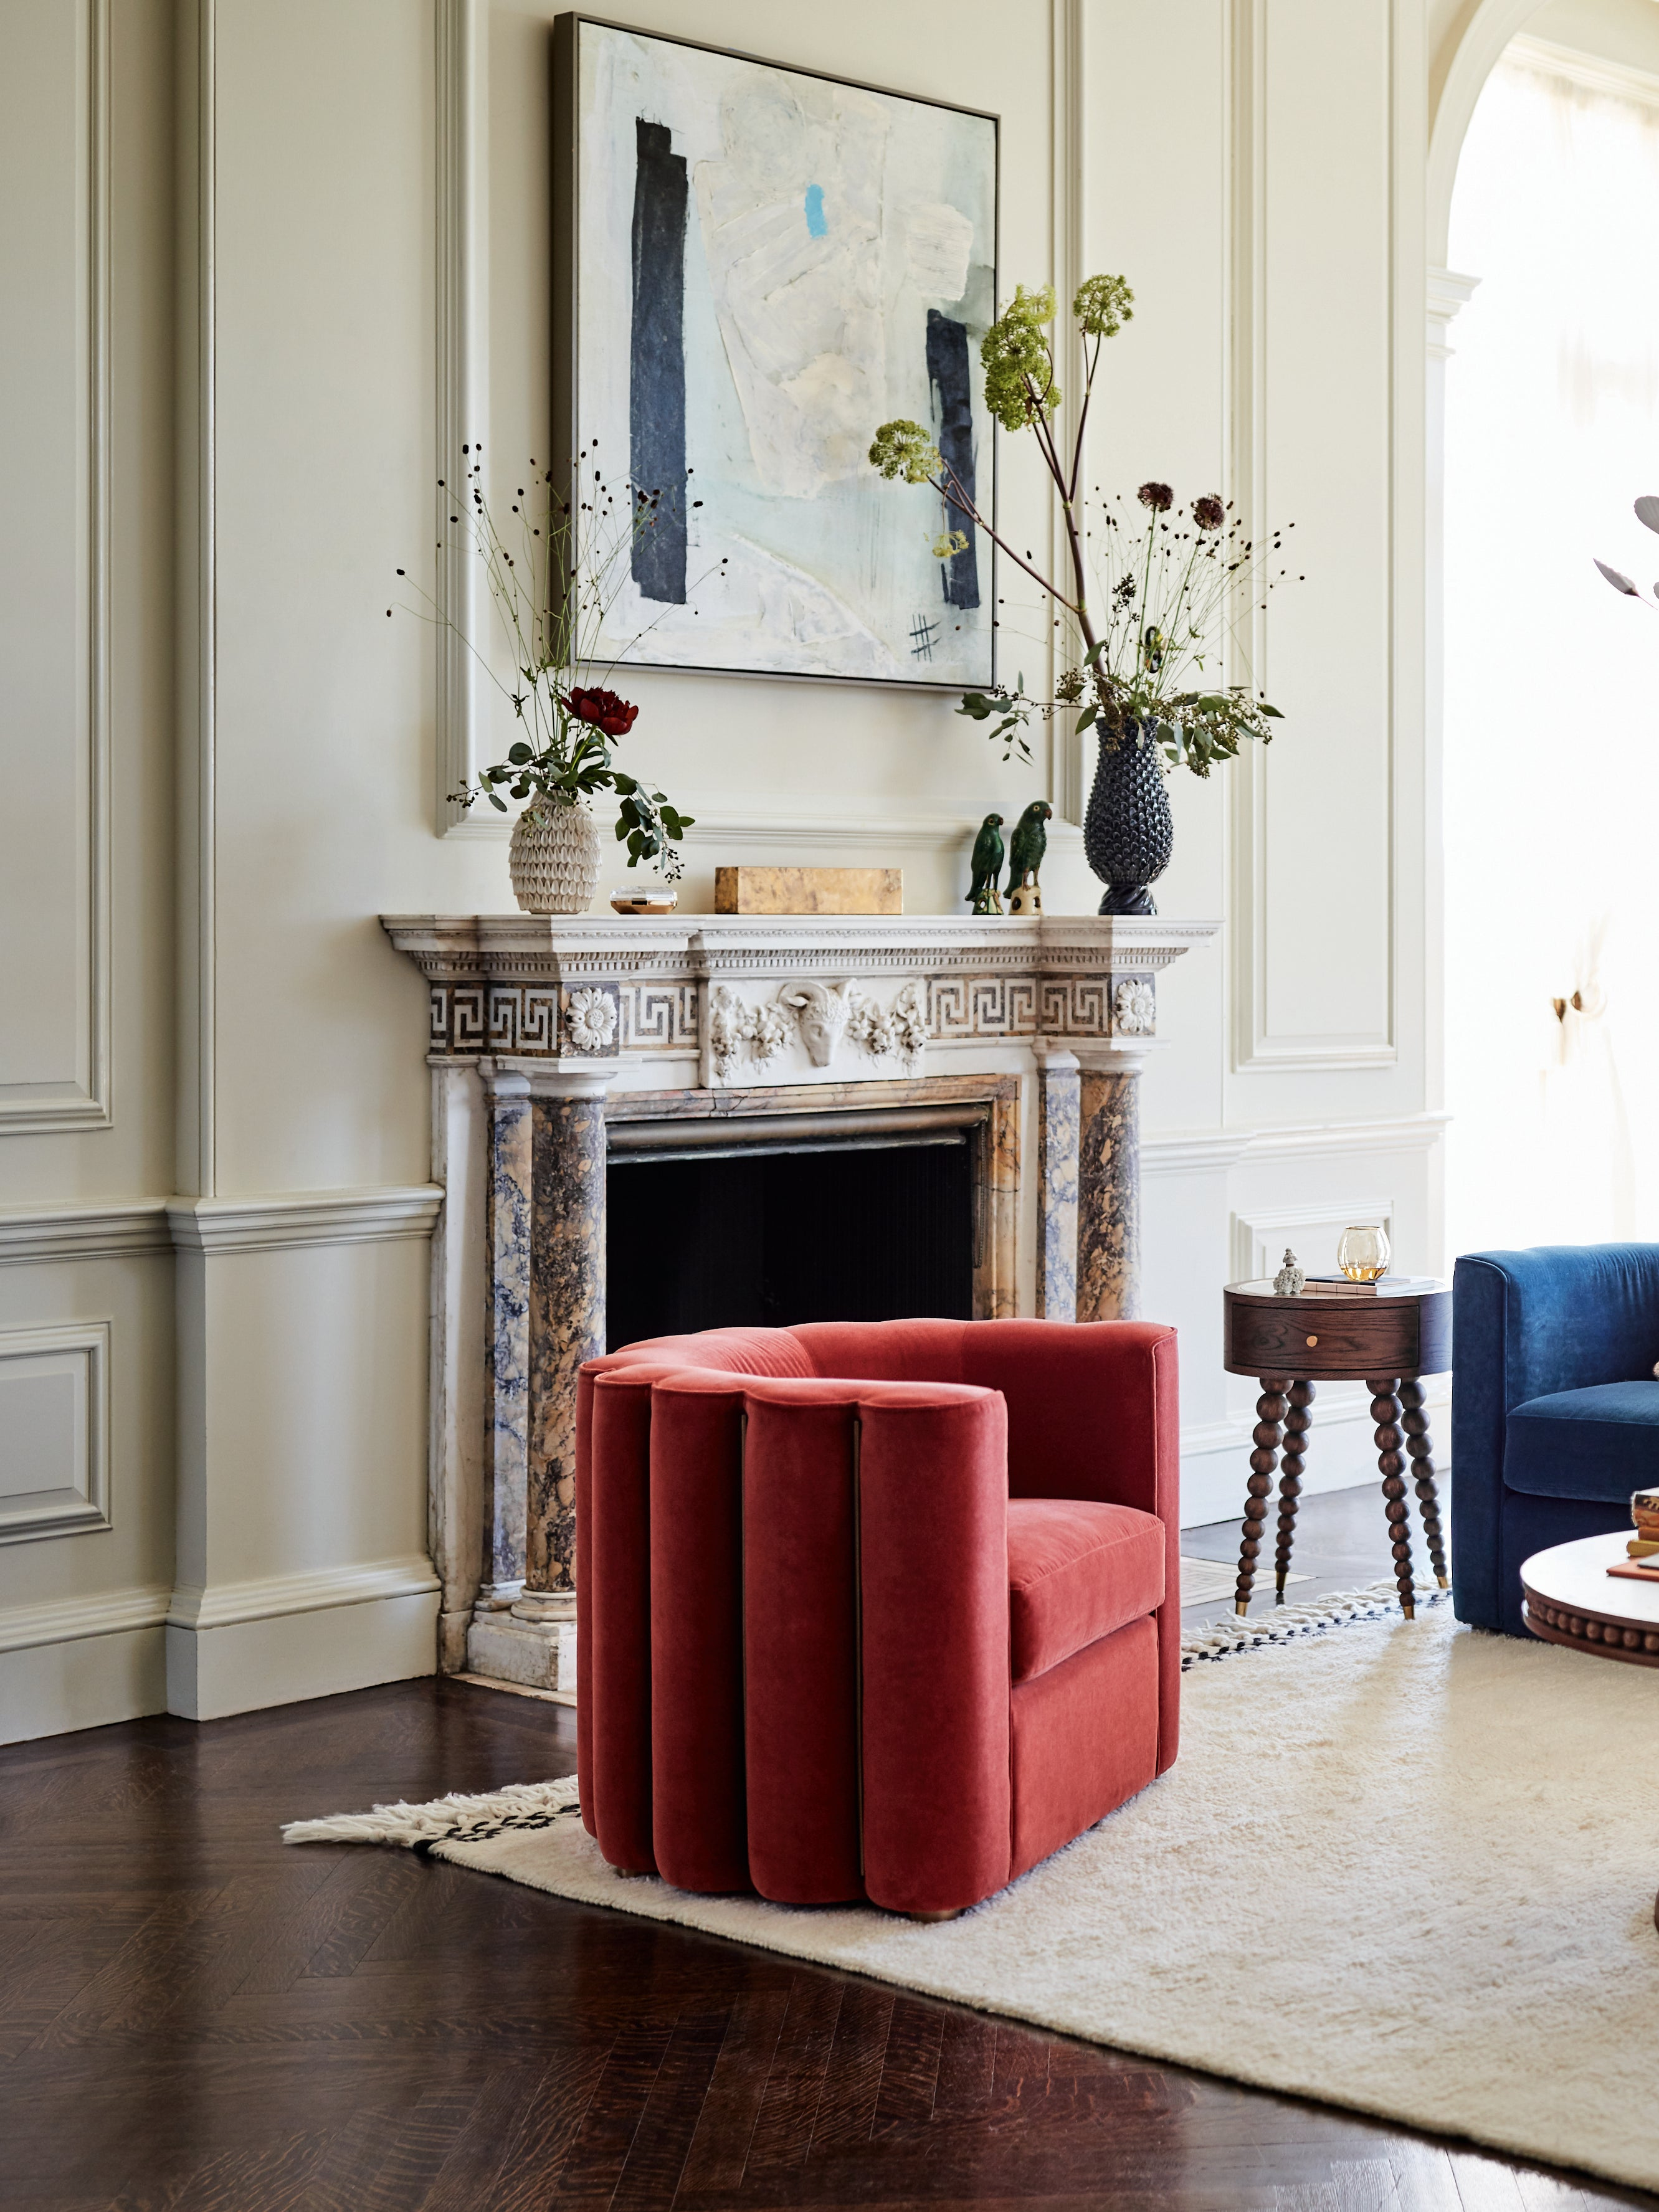 Anthropologie Wants to Make Your Home Look Like a Spanish Villa